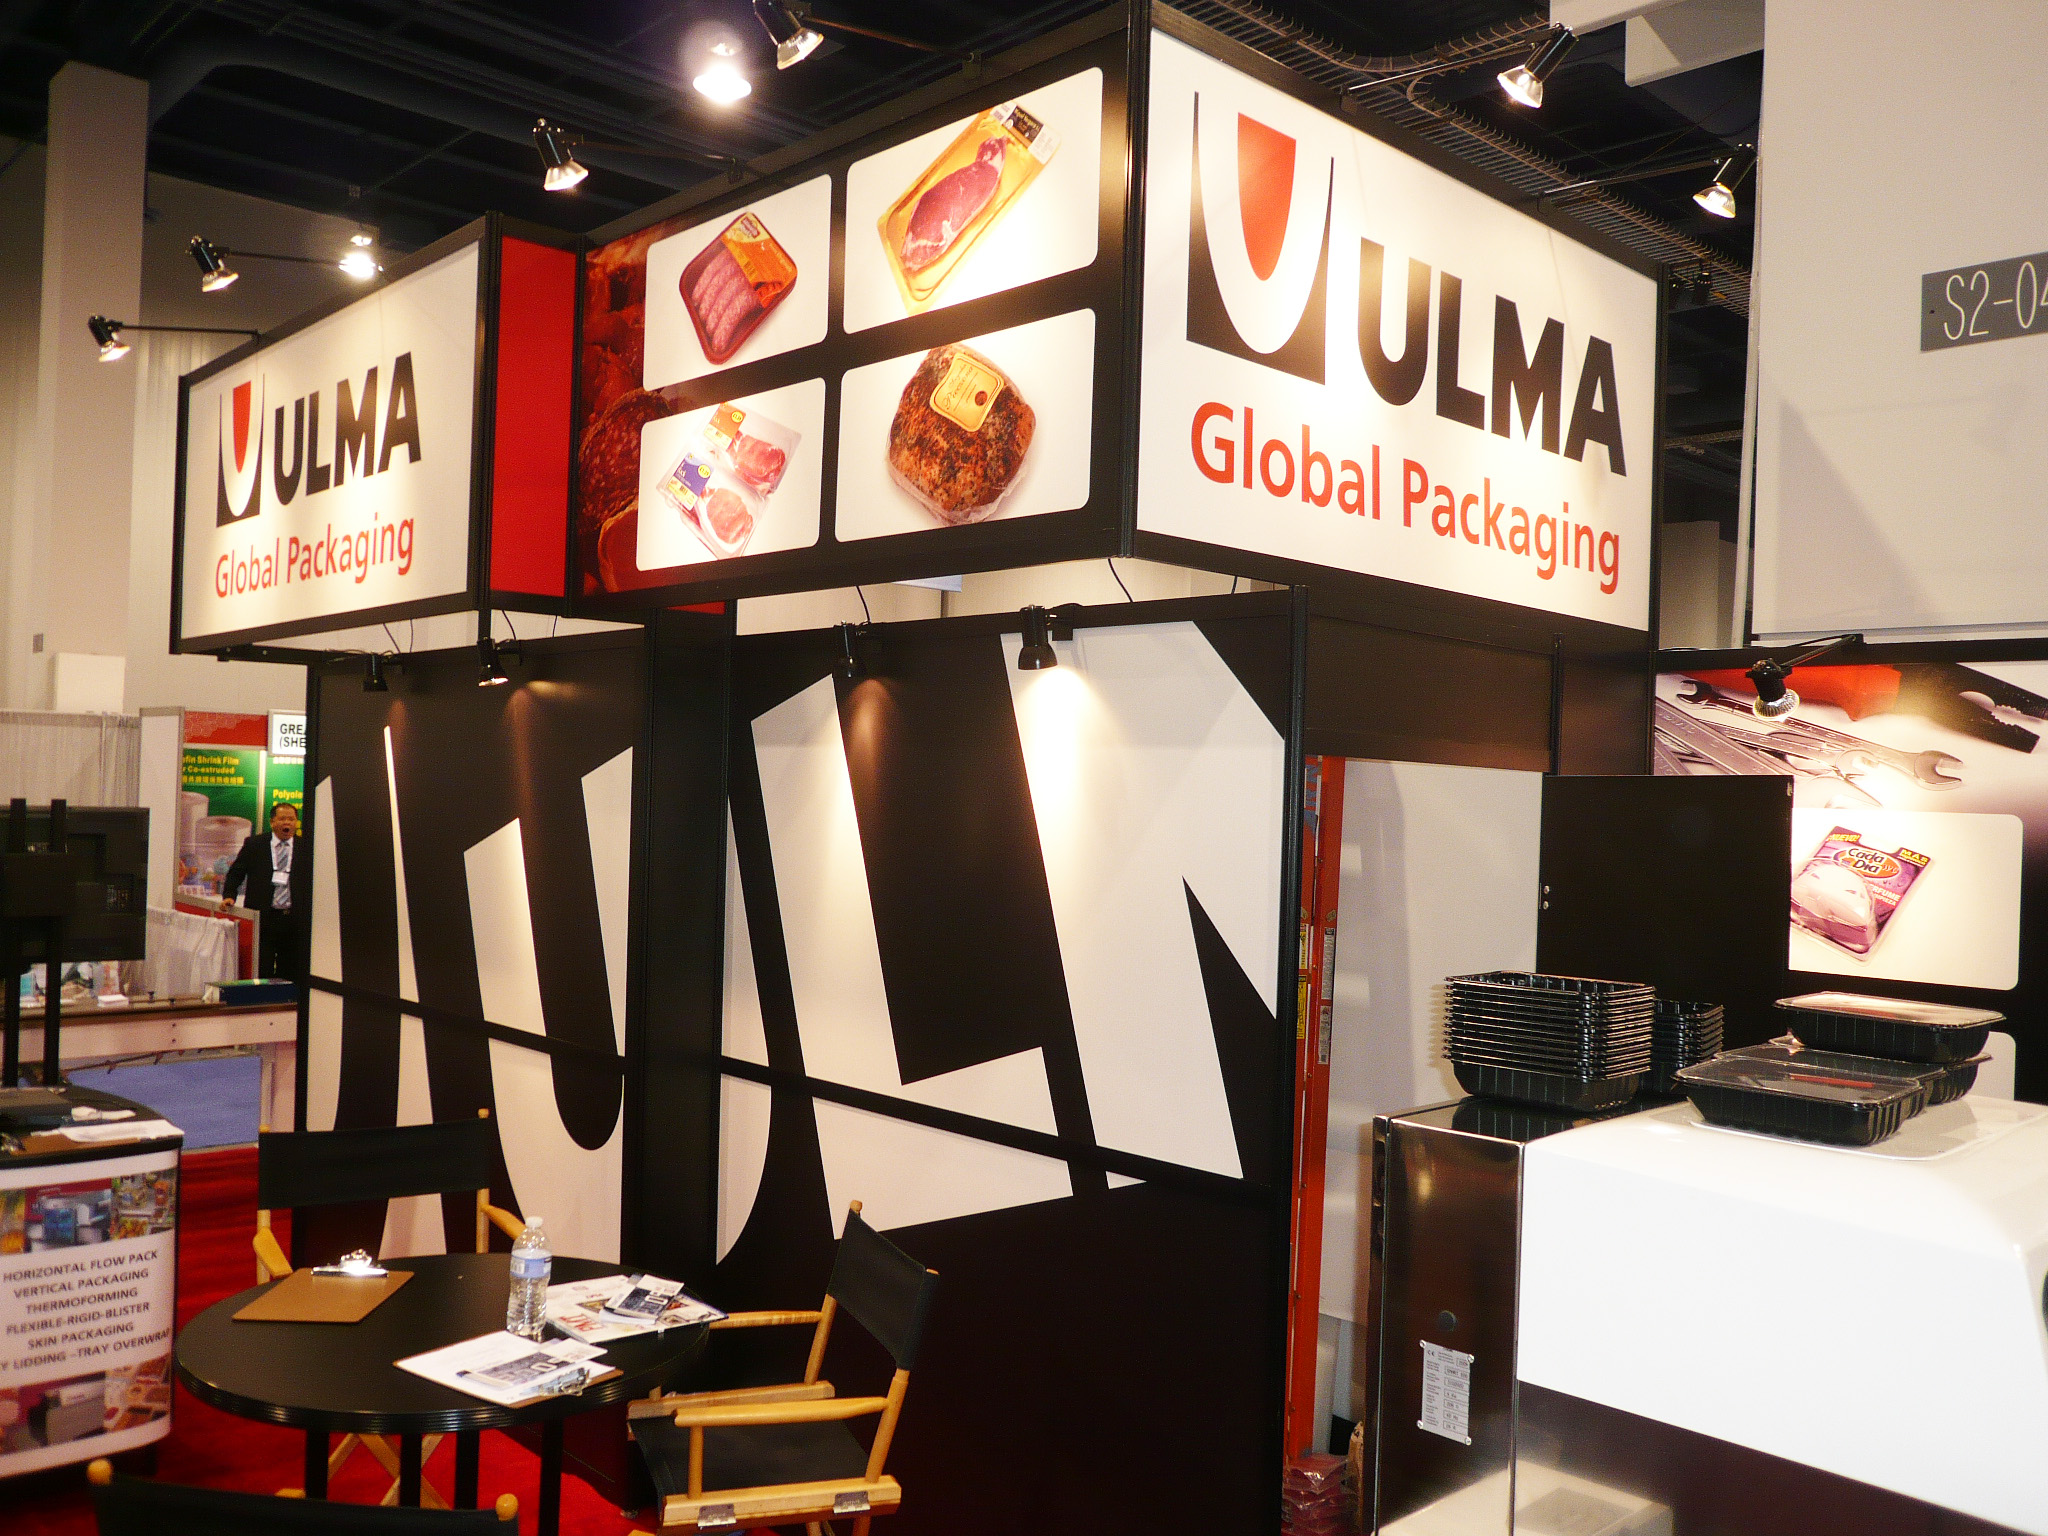 ULMA Packaging #3.jpg